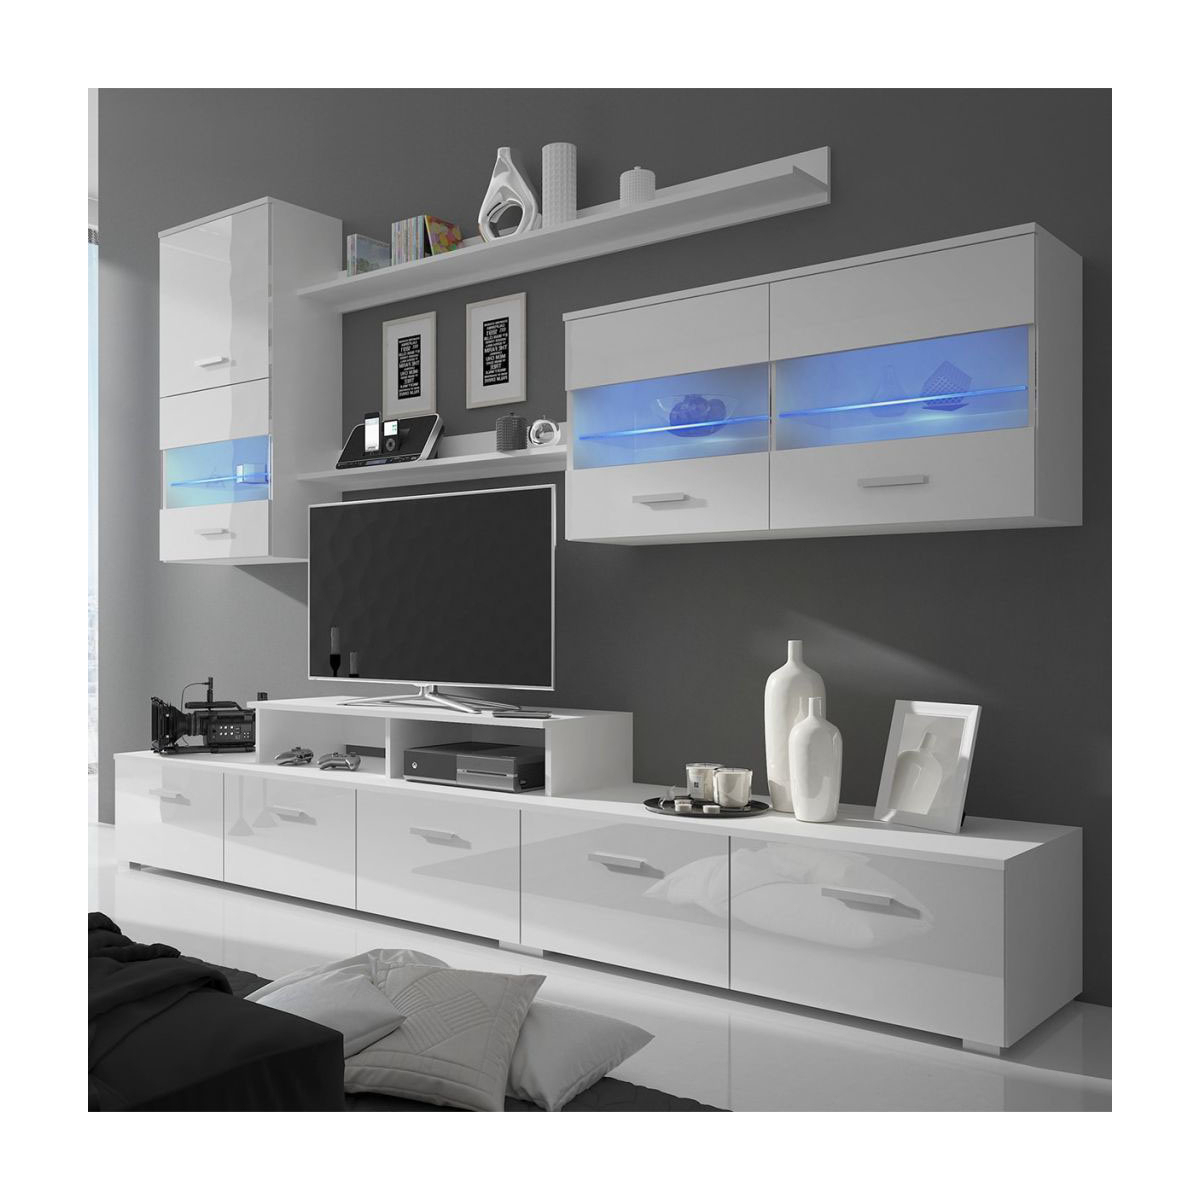 China Latest Design Led Glossy Tv Stand Wall Hall Cabinet With Regard To 57'' Led Tv Stands Cabinet (View 12 of 20)